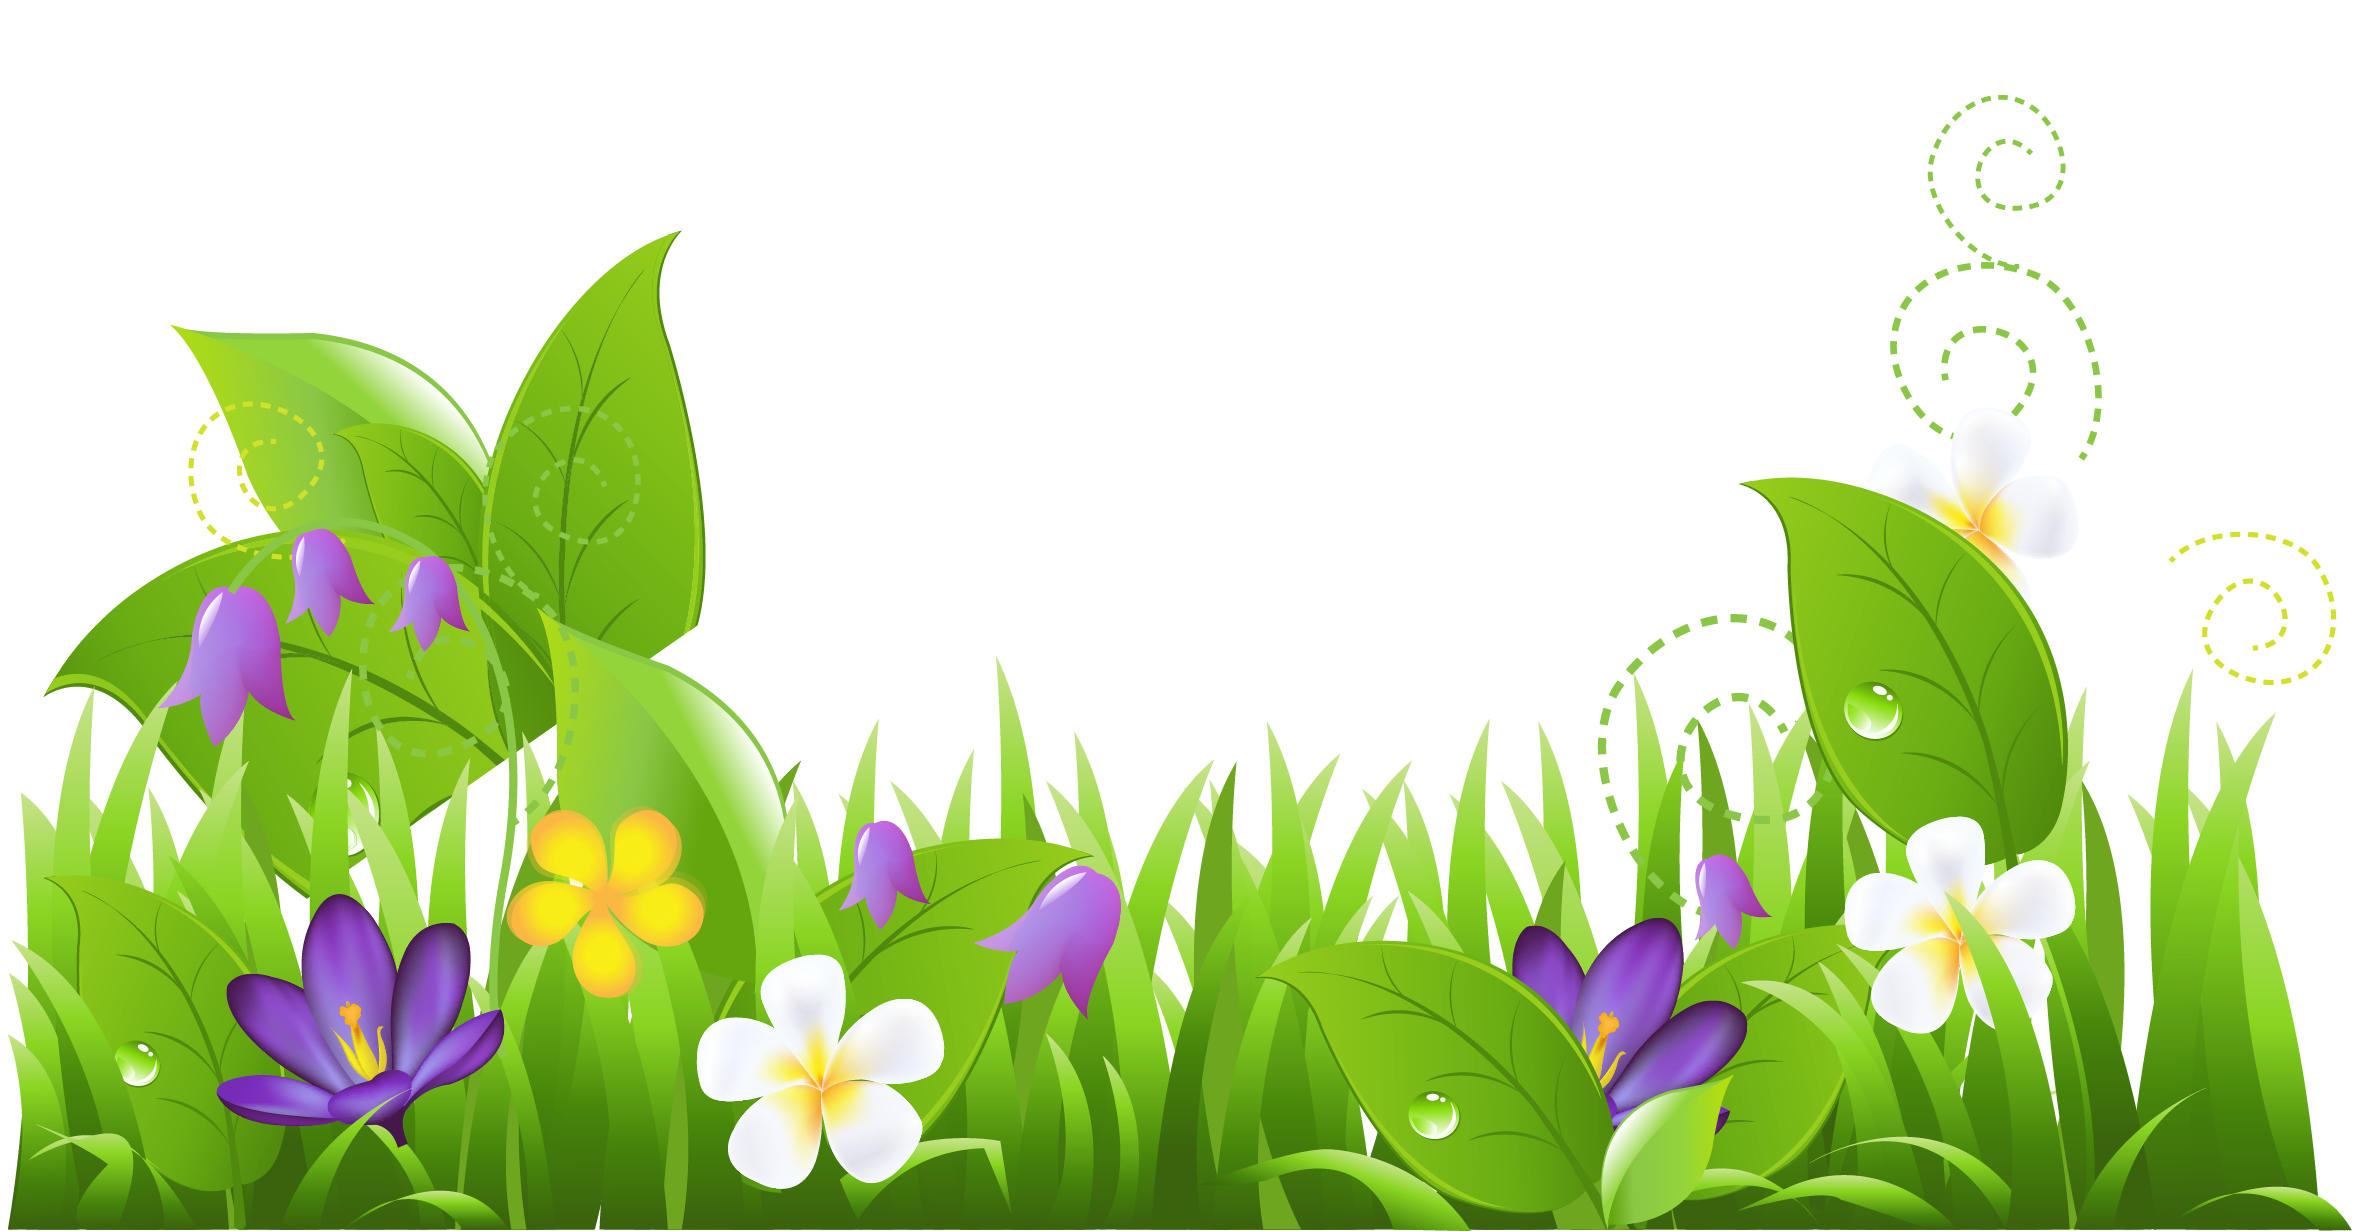 Flower field png. Grass and flowers clipart